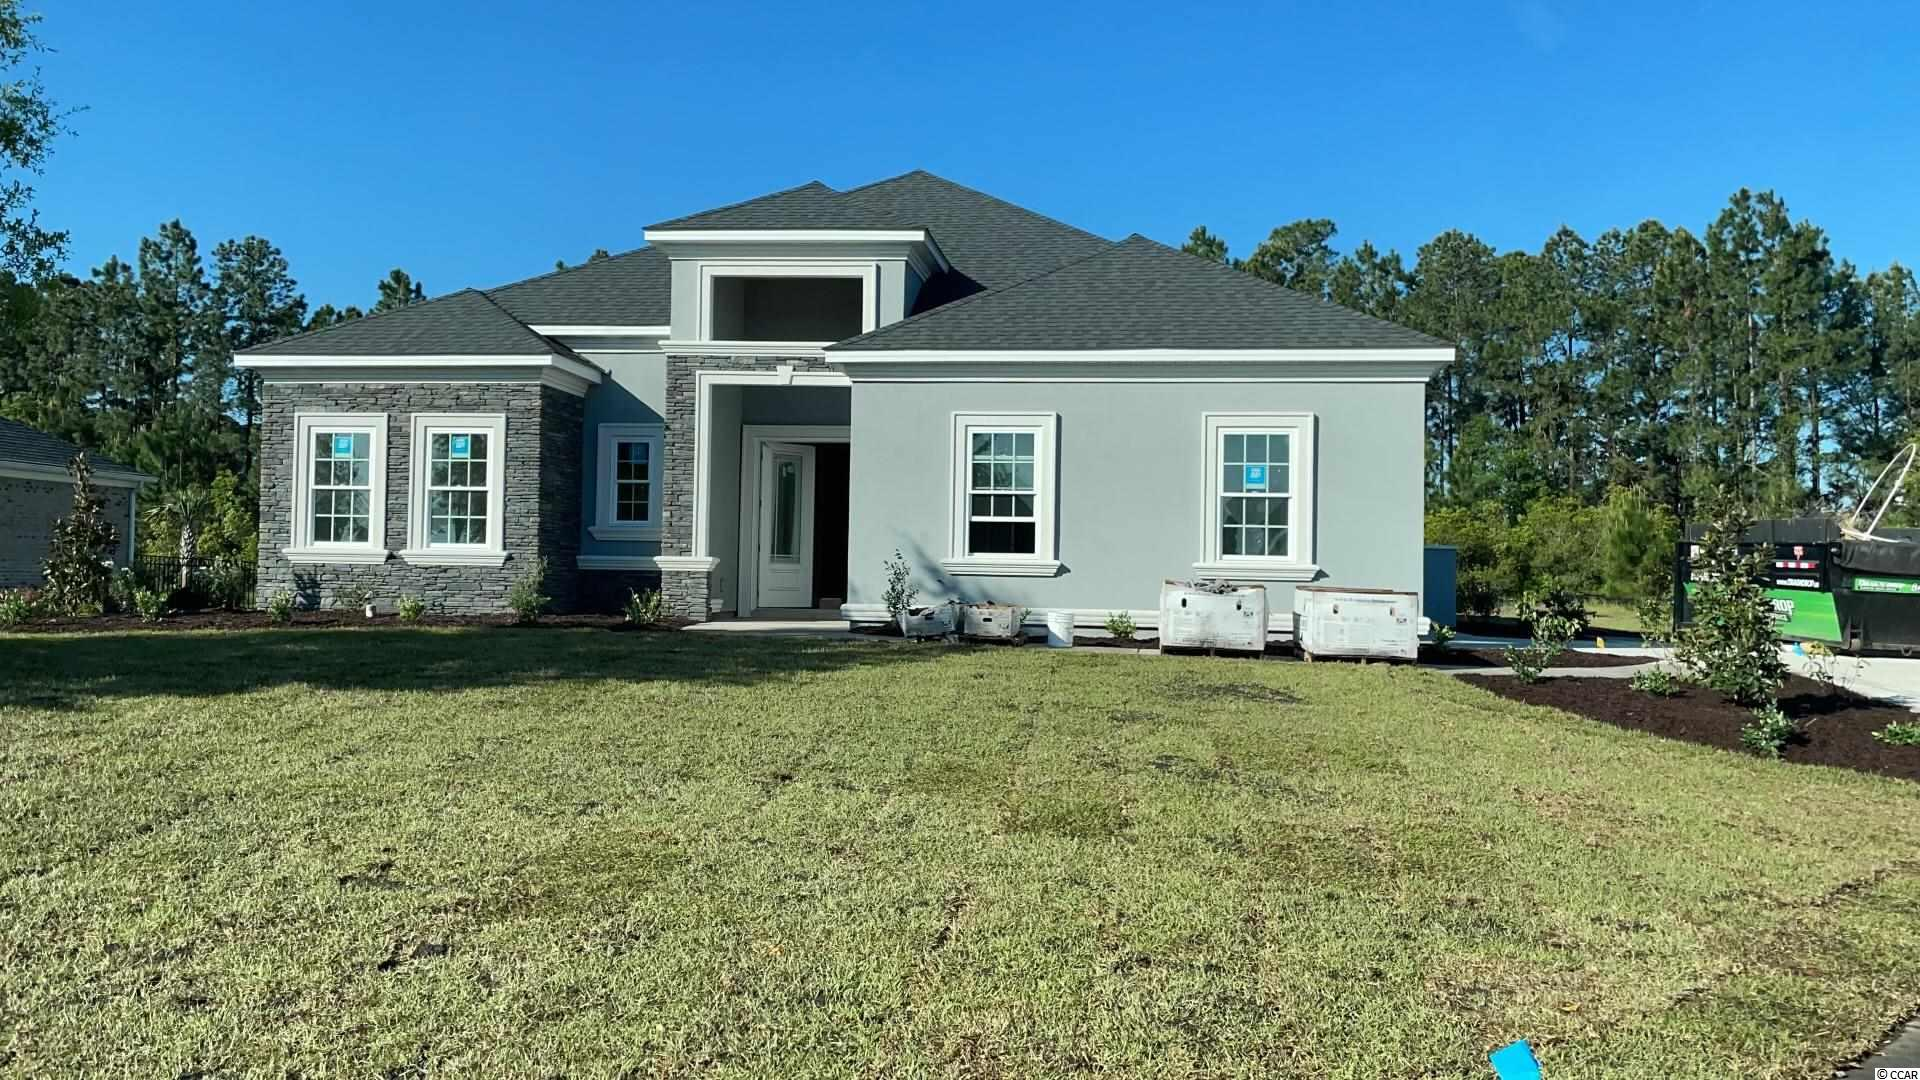 This beautiful new construction home is under construction and will be ready for a lucky buyer in April 2021! Located in the Wild Wing Plantation community that has a World class golf course and an amenities center that is amazing!. As you will enter this perfectly laid out open floorpan home with 4 bedrooms 3 bathrooms you will notice right away the upgrades and quality of work are above and beyond other larger builders in the area. This is a 100% custom home and it shows!. With LVP flooring throughout, stucco exterior, upgraded countertops, tankless gas water heater, soft close all wood cabinets, all showers are tile including a large shower and tub in the master bathroom, custom wood shelving in your oversized master walk in closet, large tray ceilings, appliances credit will be given, crown molding, upgraded lighting package and a outdoor built in natural gas BBQ area!. This is a large private lot with woods/water access to the large lake in Wild Wing. Community has two entrances/exits which makes for easy access to all shopping, restaurants, medical facilities, Coastal Carolina University and two Highways for a quick drive to anywhere on the beach!. Buyers if purchase in time will be given choices for certain finishes. Pictures are of a completed similar home in the community. Book your showing today as you will not be disappointed!